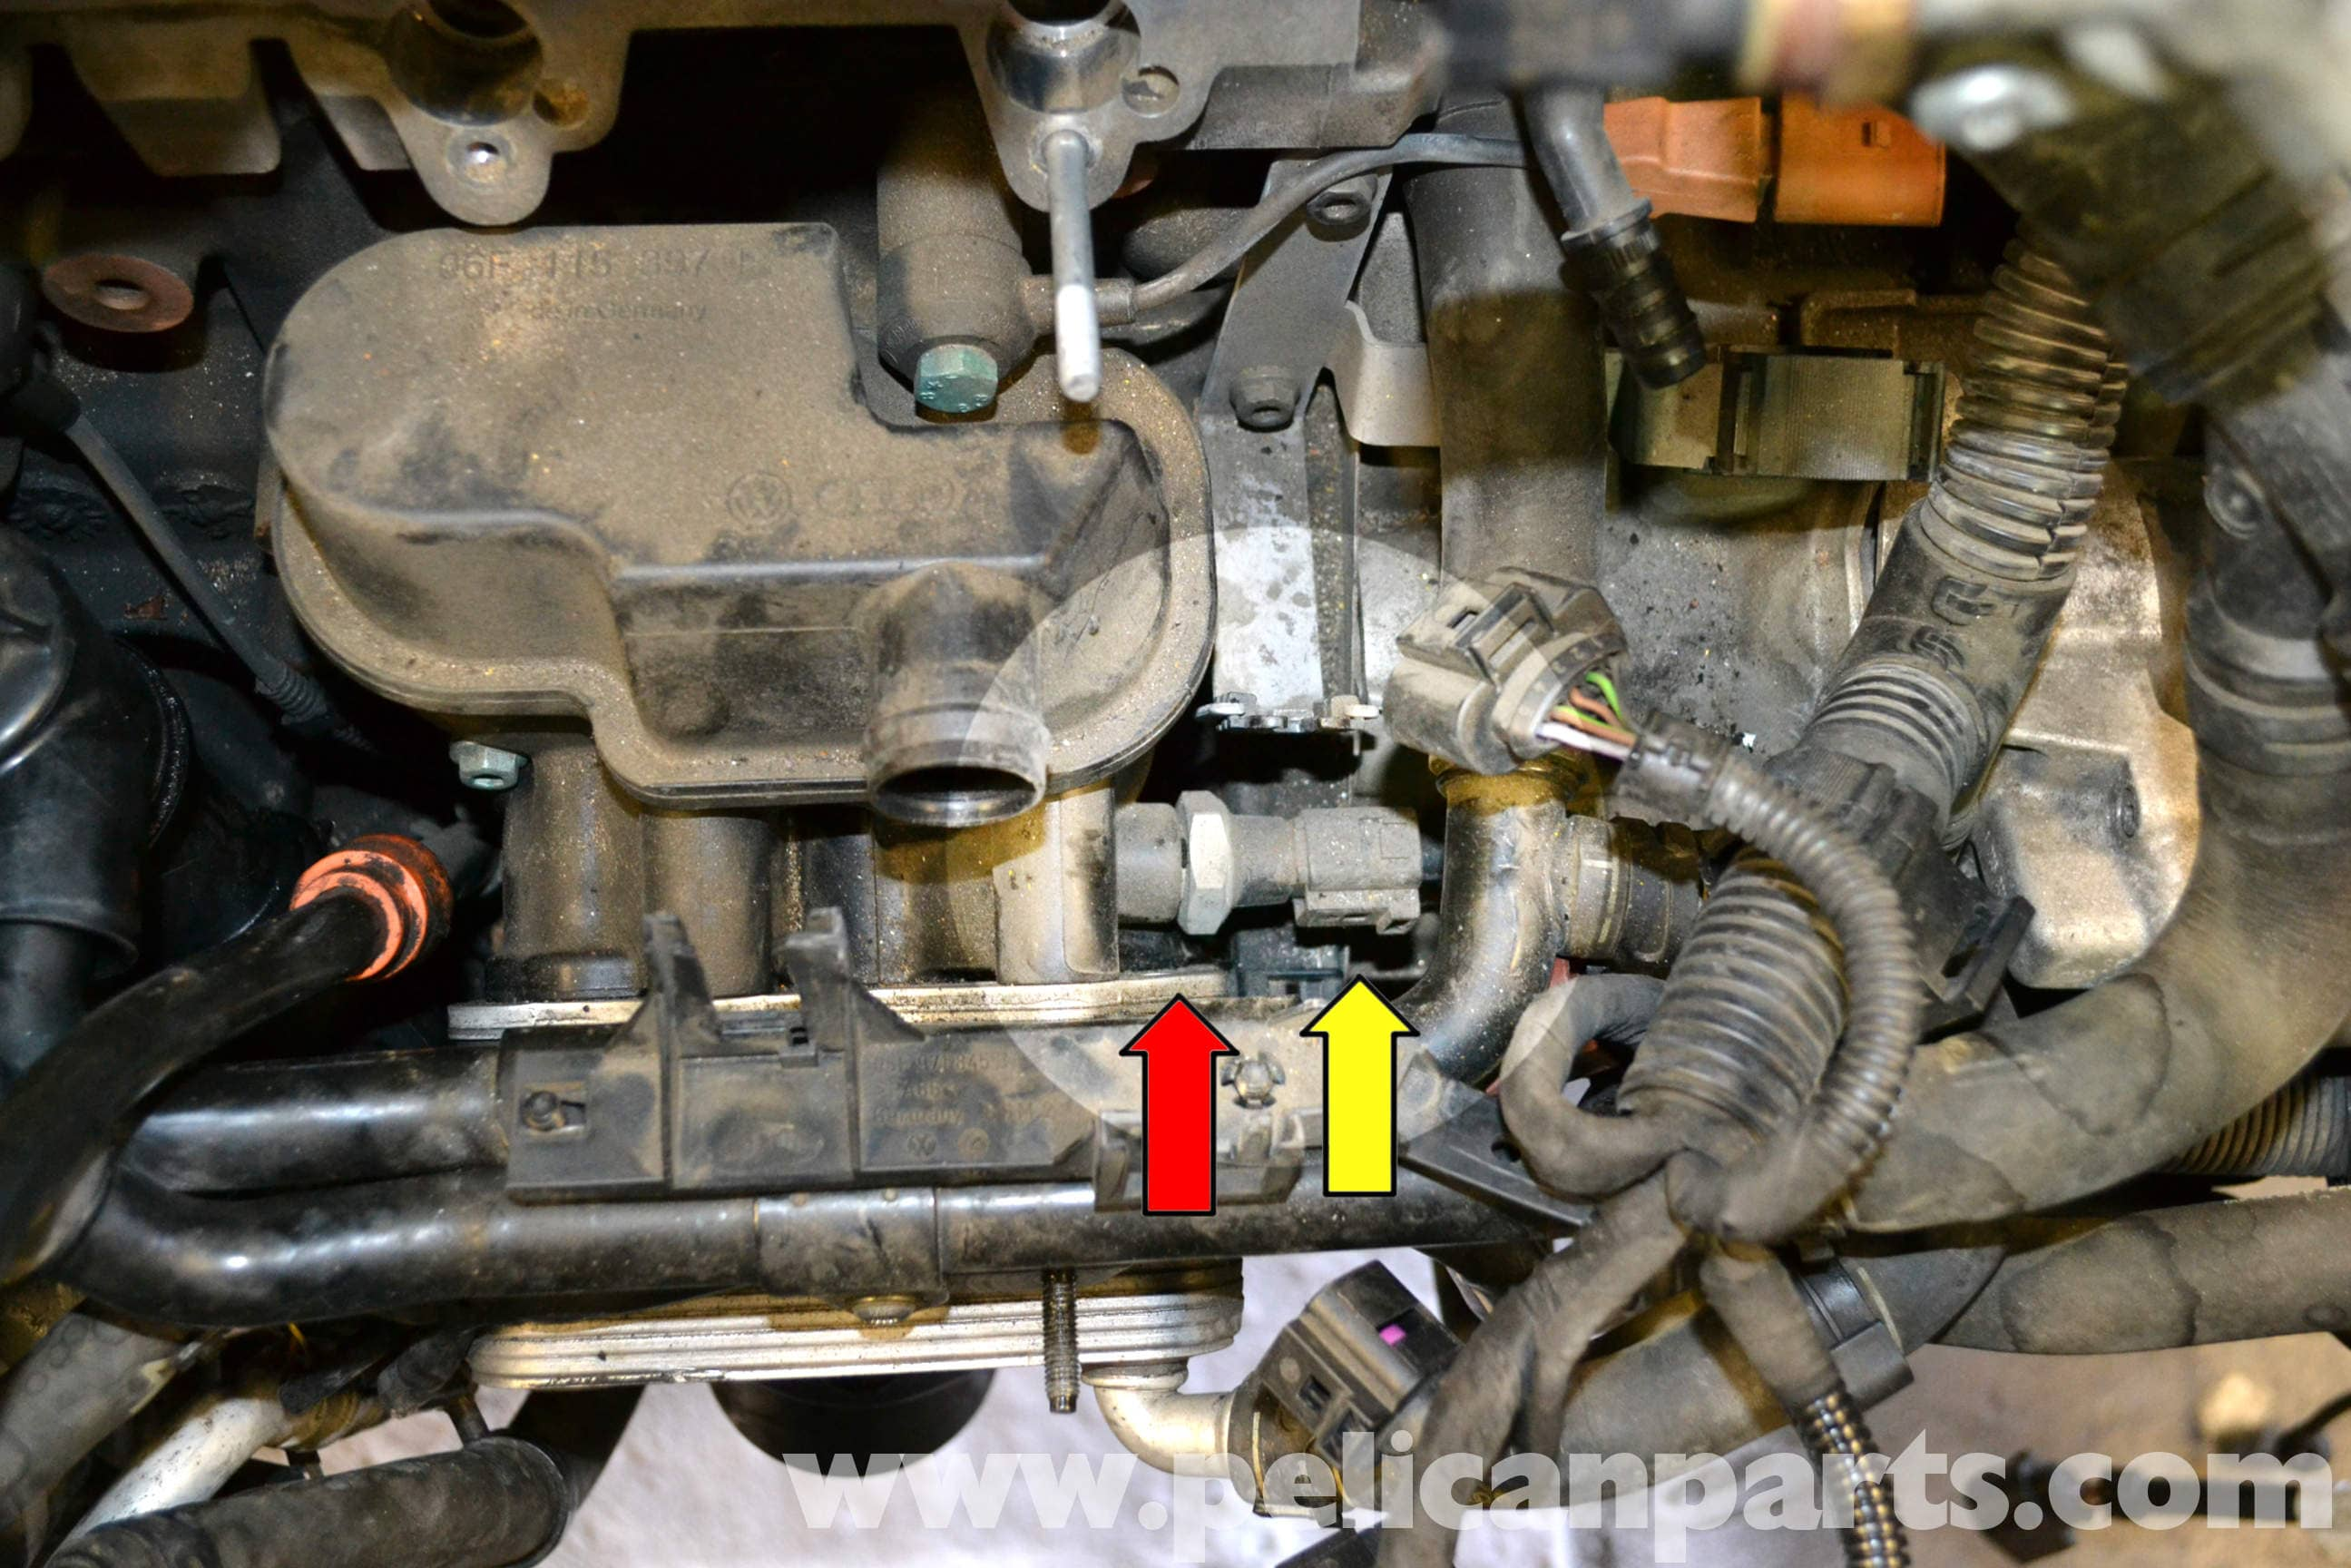 O2 Sensor Wiring Diagram Is The Stock That Volkswagen Golf Gti Mk V Oil Pressure Switch Replacement